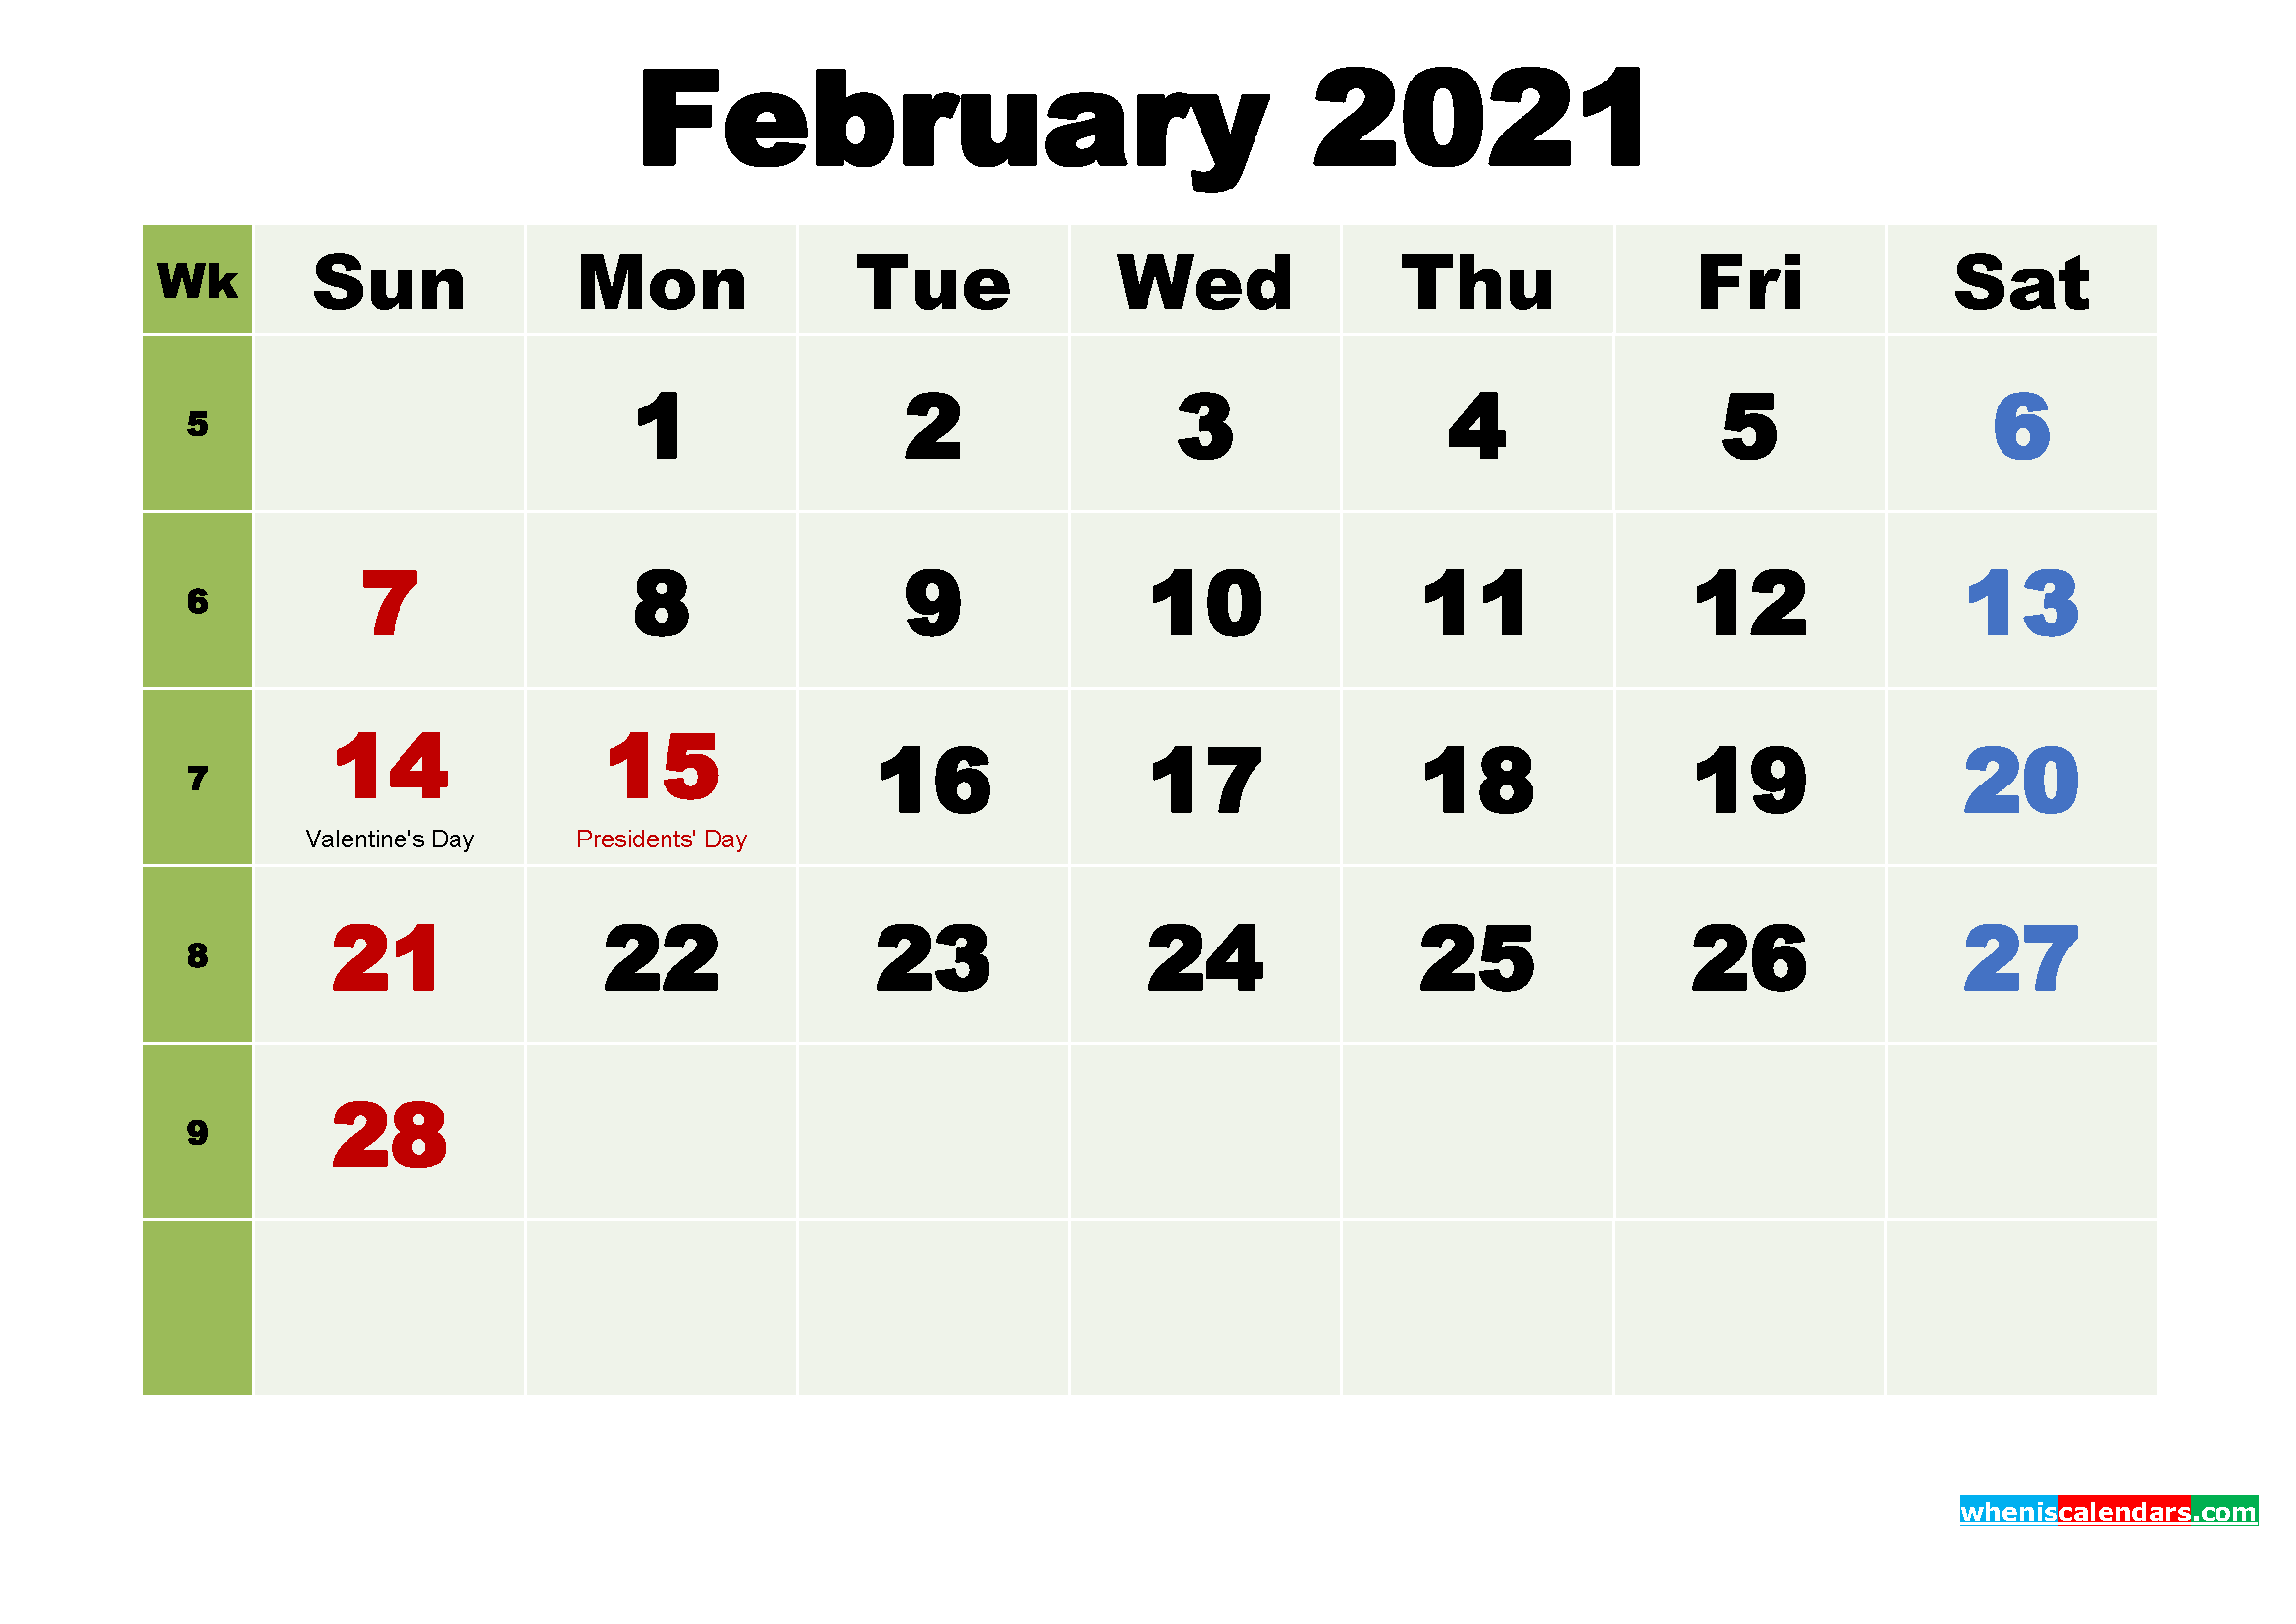 Printable February 2021 Calendar by Month